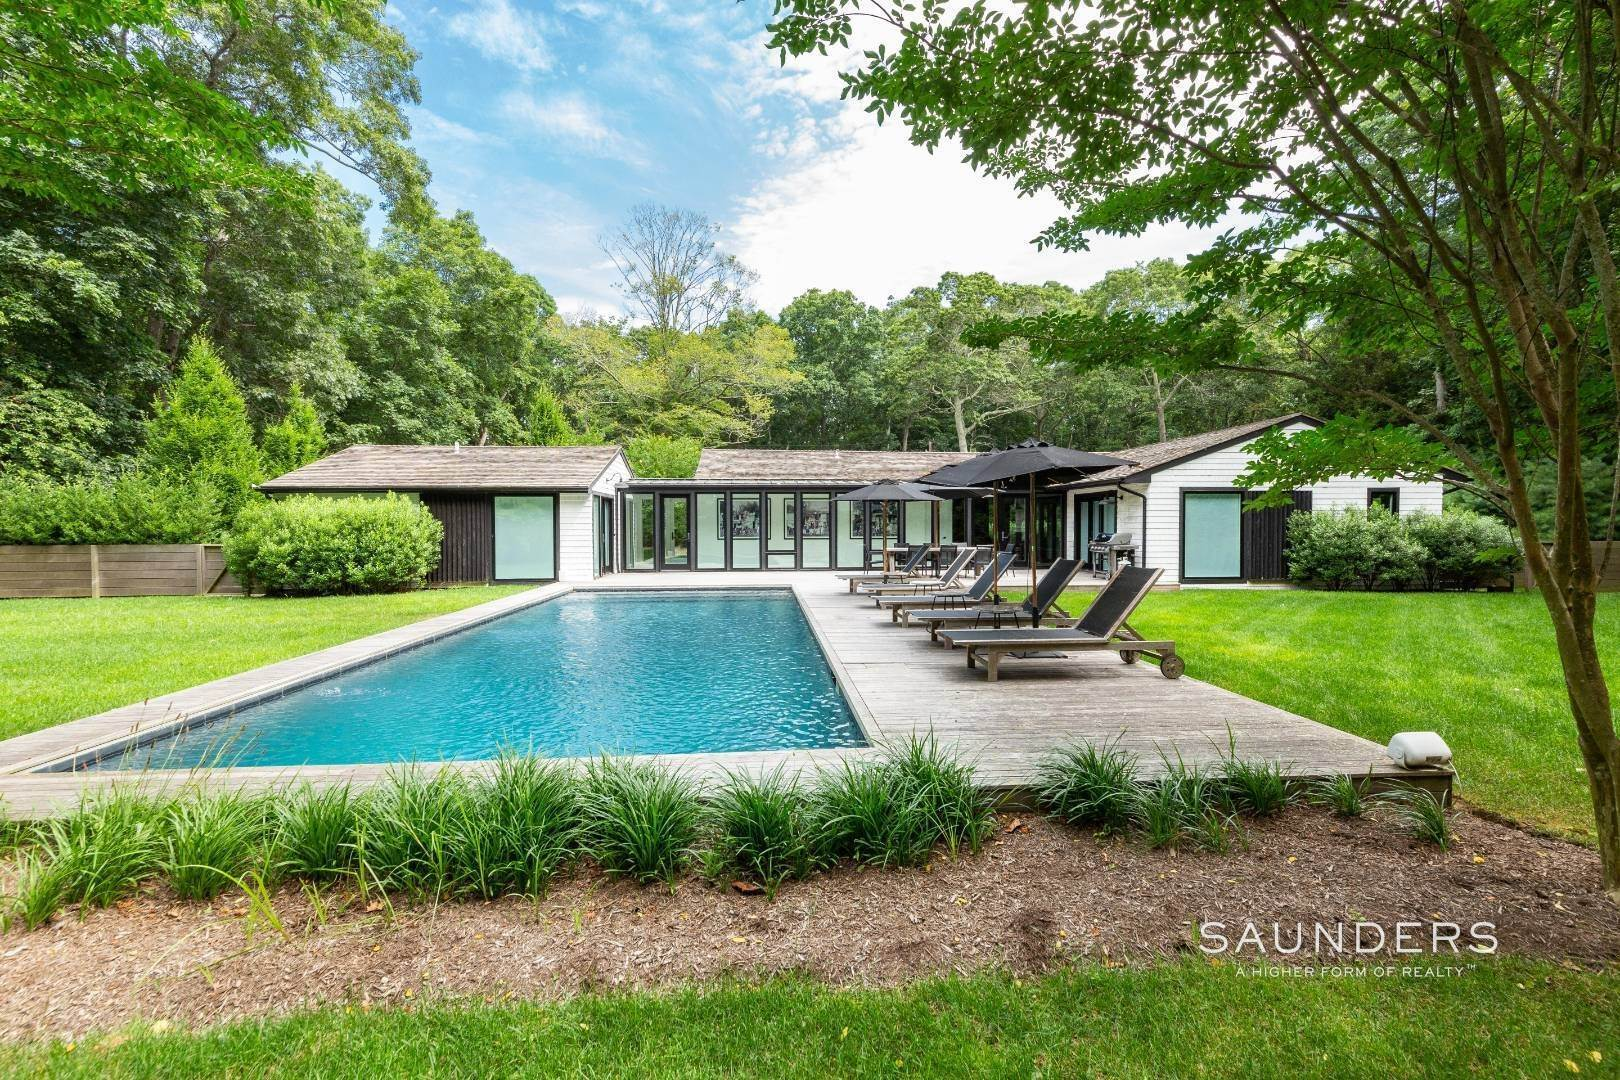 Single Family Homes for Sale at Northwest Woods Sophistication 229 Cedar Street, East Hampton, East Hampton Town, NY 11937